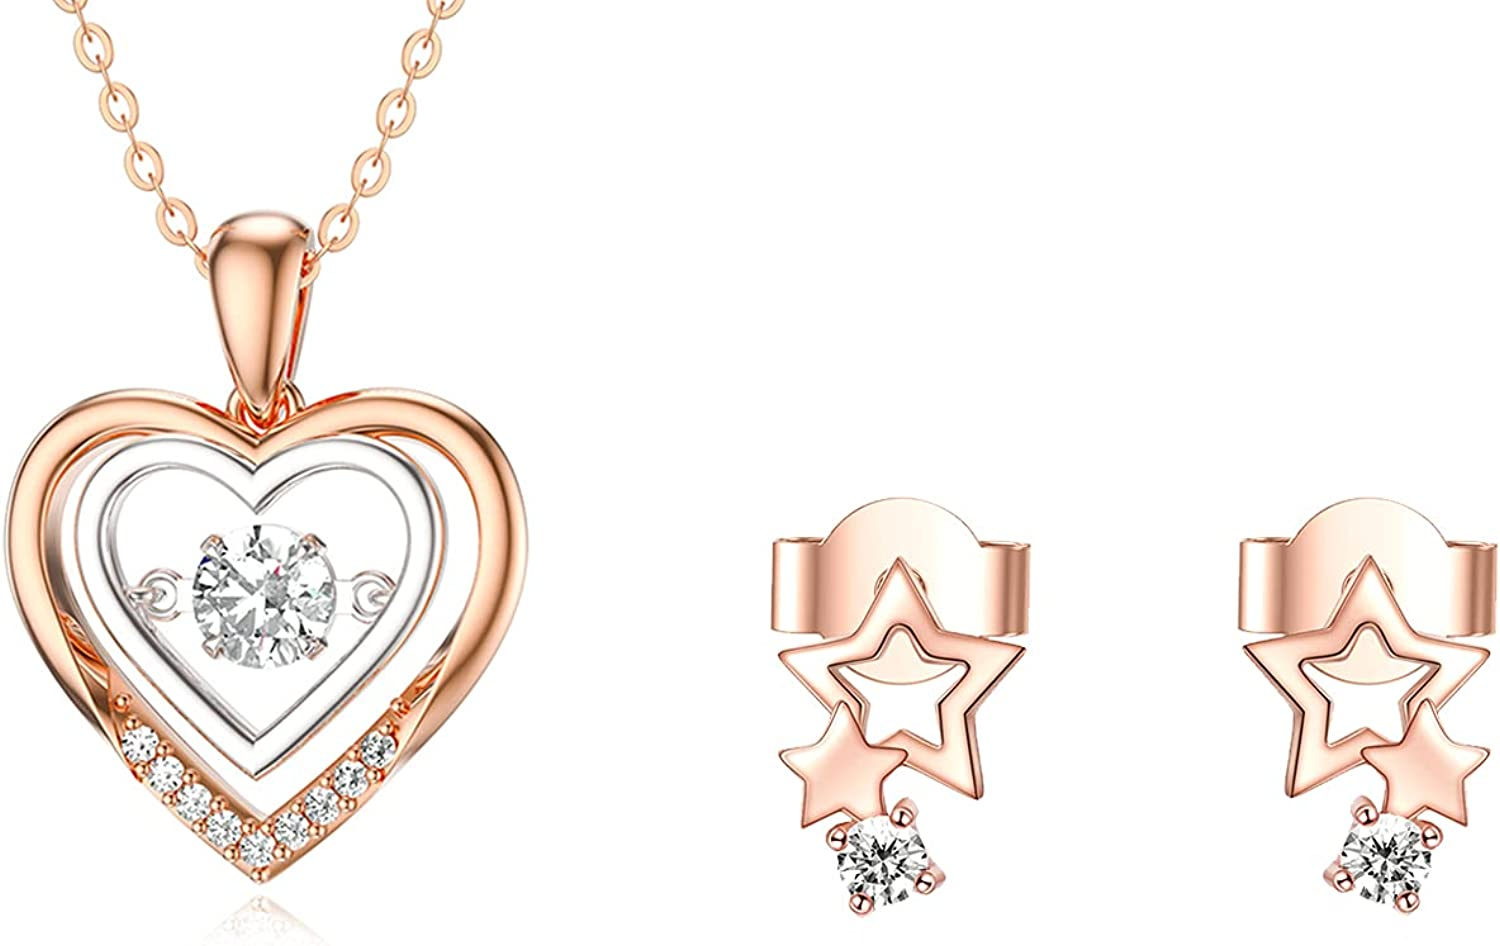 14k Rose Gold Dancing Heart Necklace and 18k Rose Gold Star Stud Earrings, Love Jewelry Set for Women